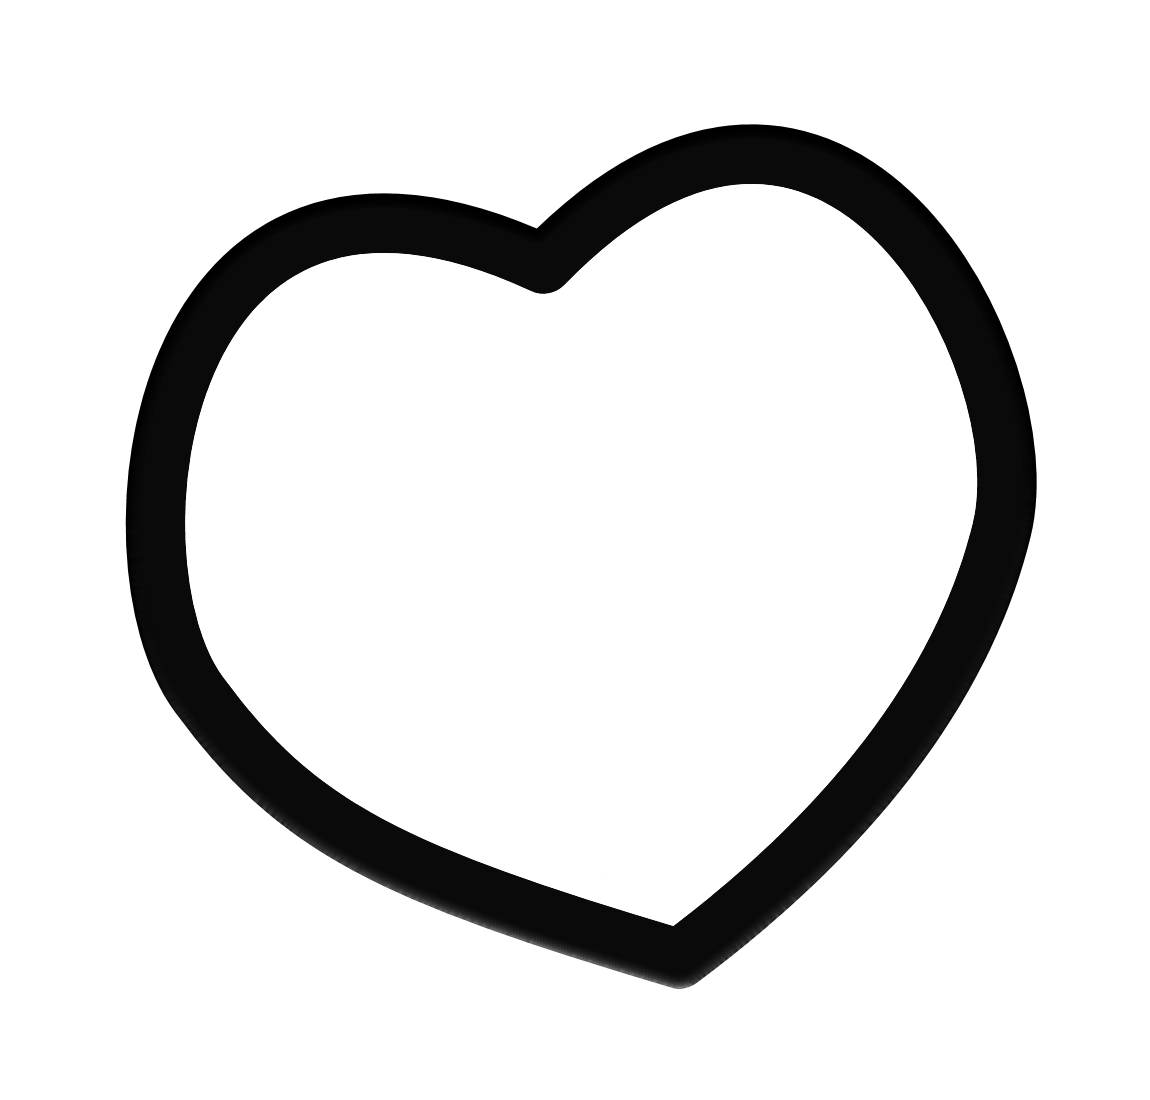 Black Heart Outline Clipart Black heart outline - clipart